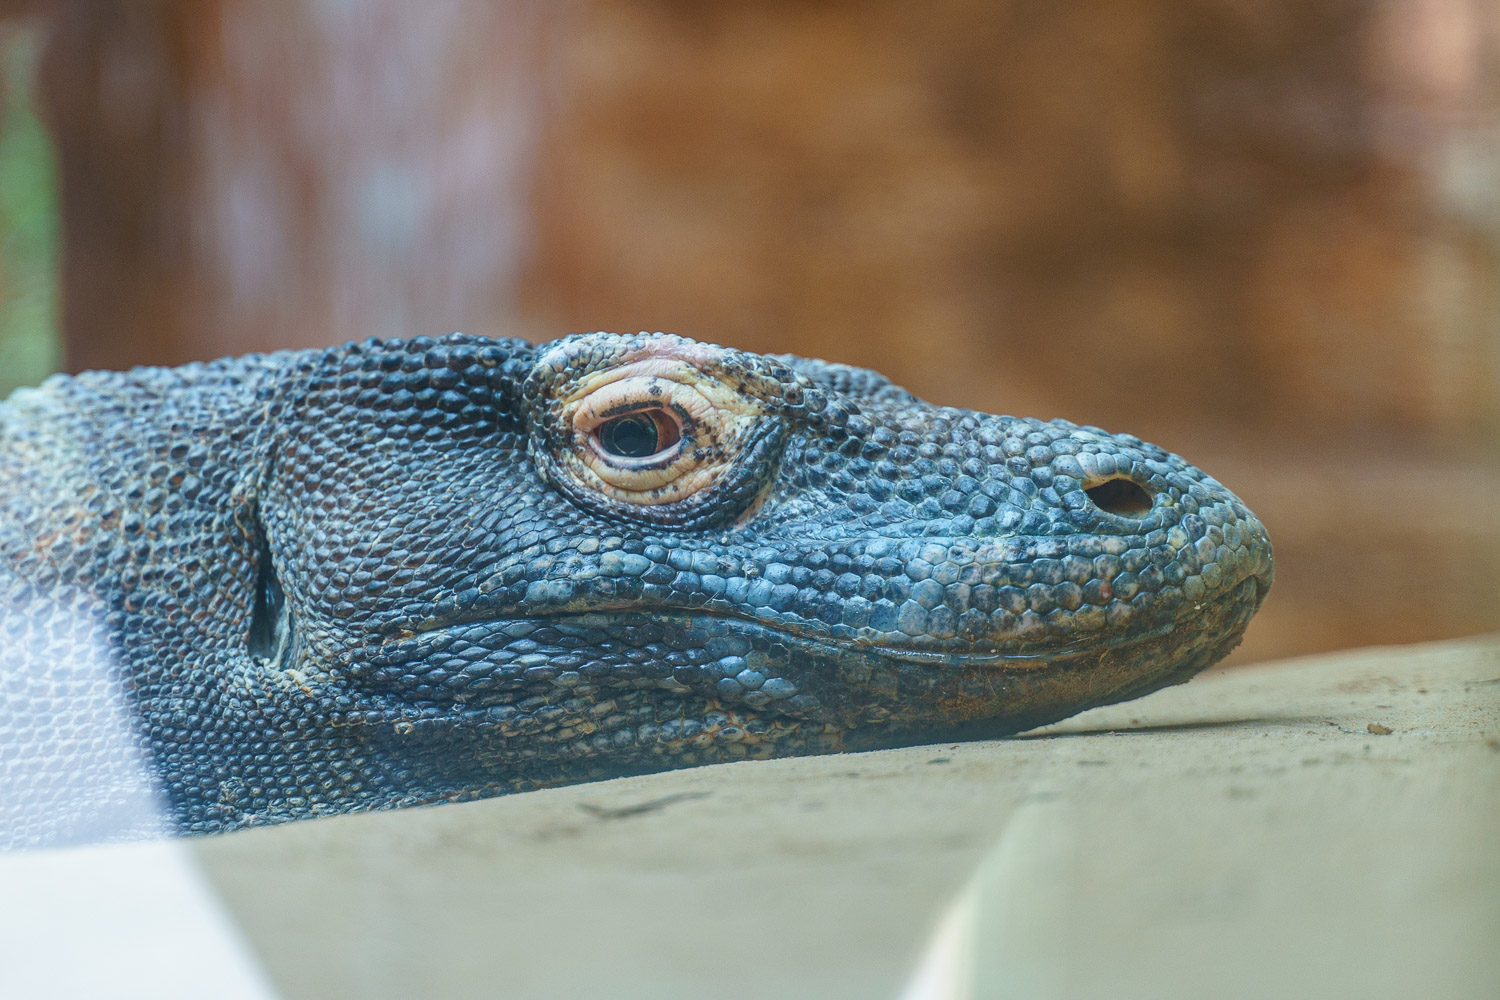 I often feel like this Komodo Dragon when I wake up in the morning.  75mm - 1/100 - f/2.8 - ISO 100